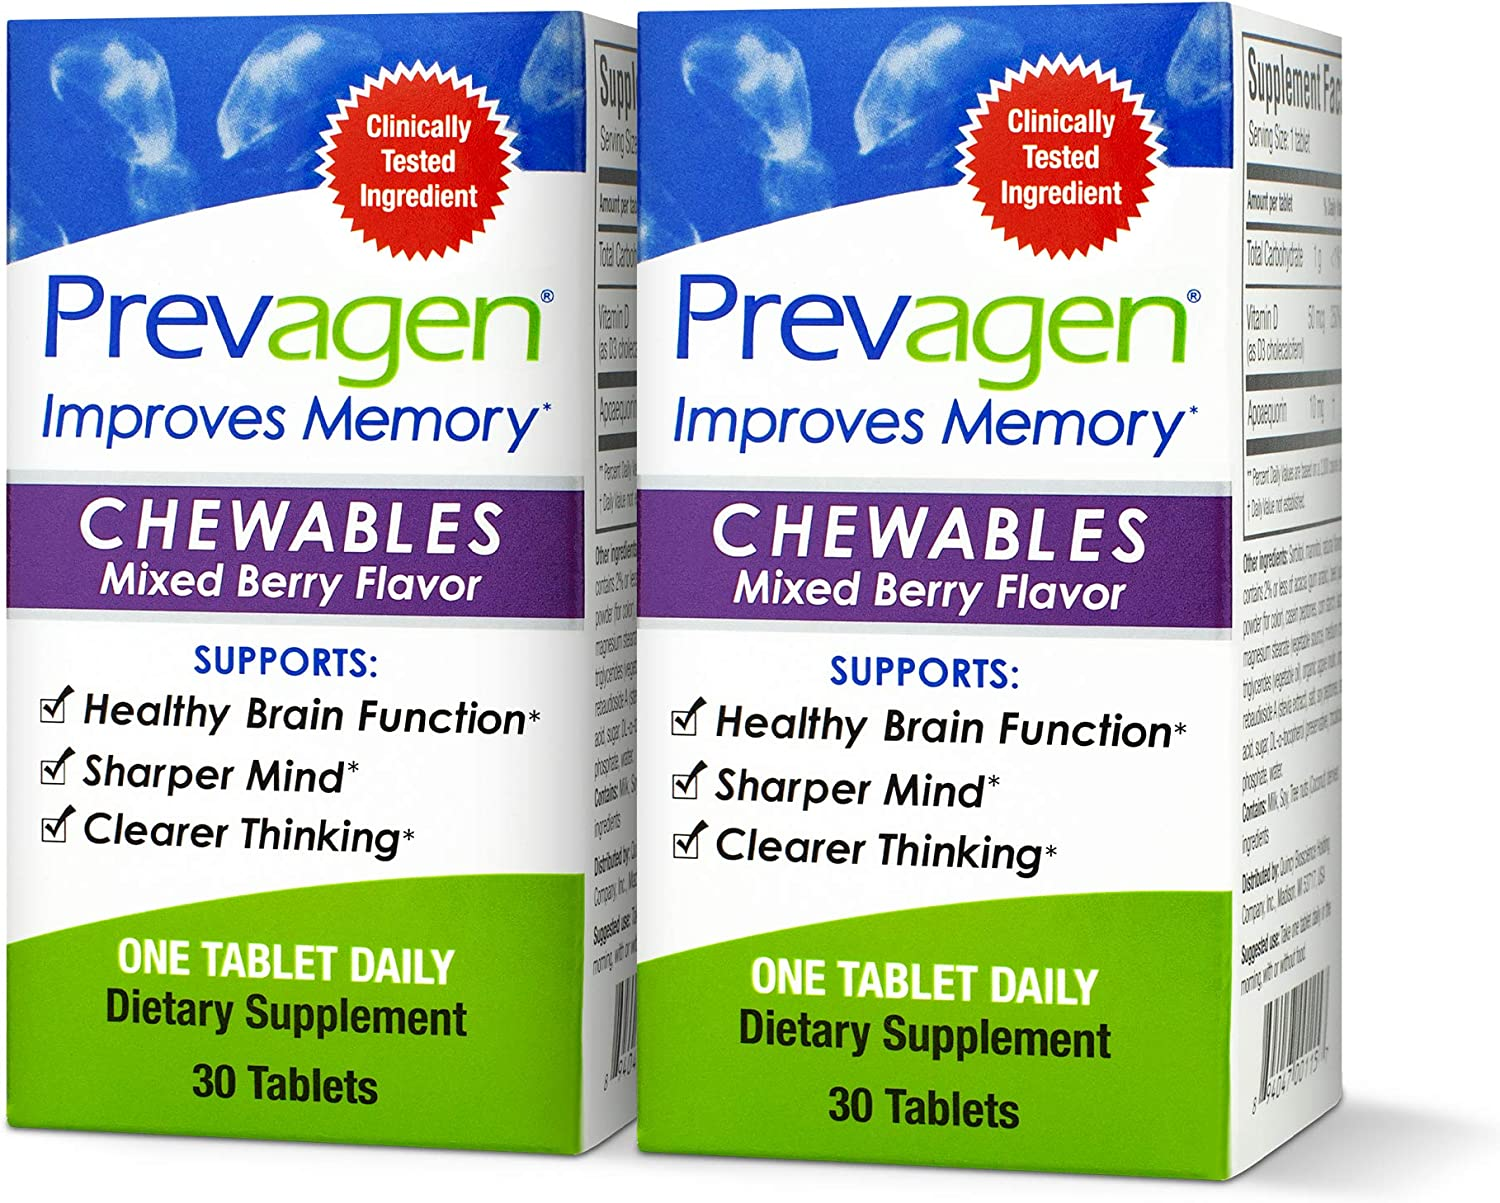 Prevagen Improves Memory - Regular Strength 10mg, 30 Chewables |Mixed Berry-2 Pack| with Apoaequorin & Vitamin D | Brain Supplement for Better Brain Health, Supports Healthy Brain Function and Clarity